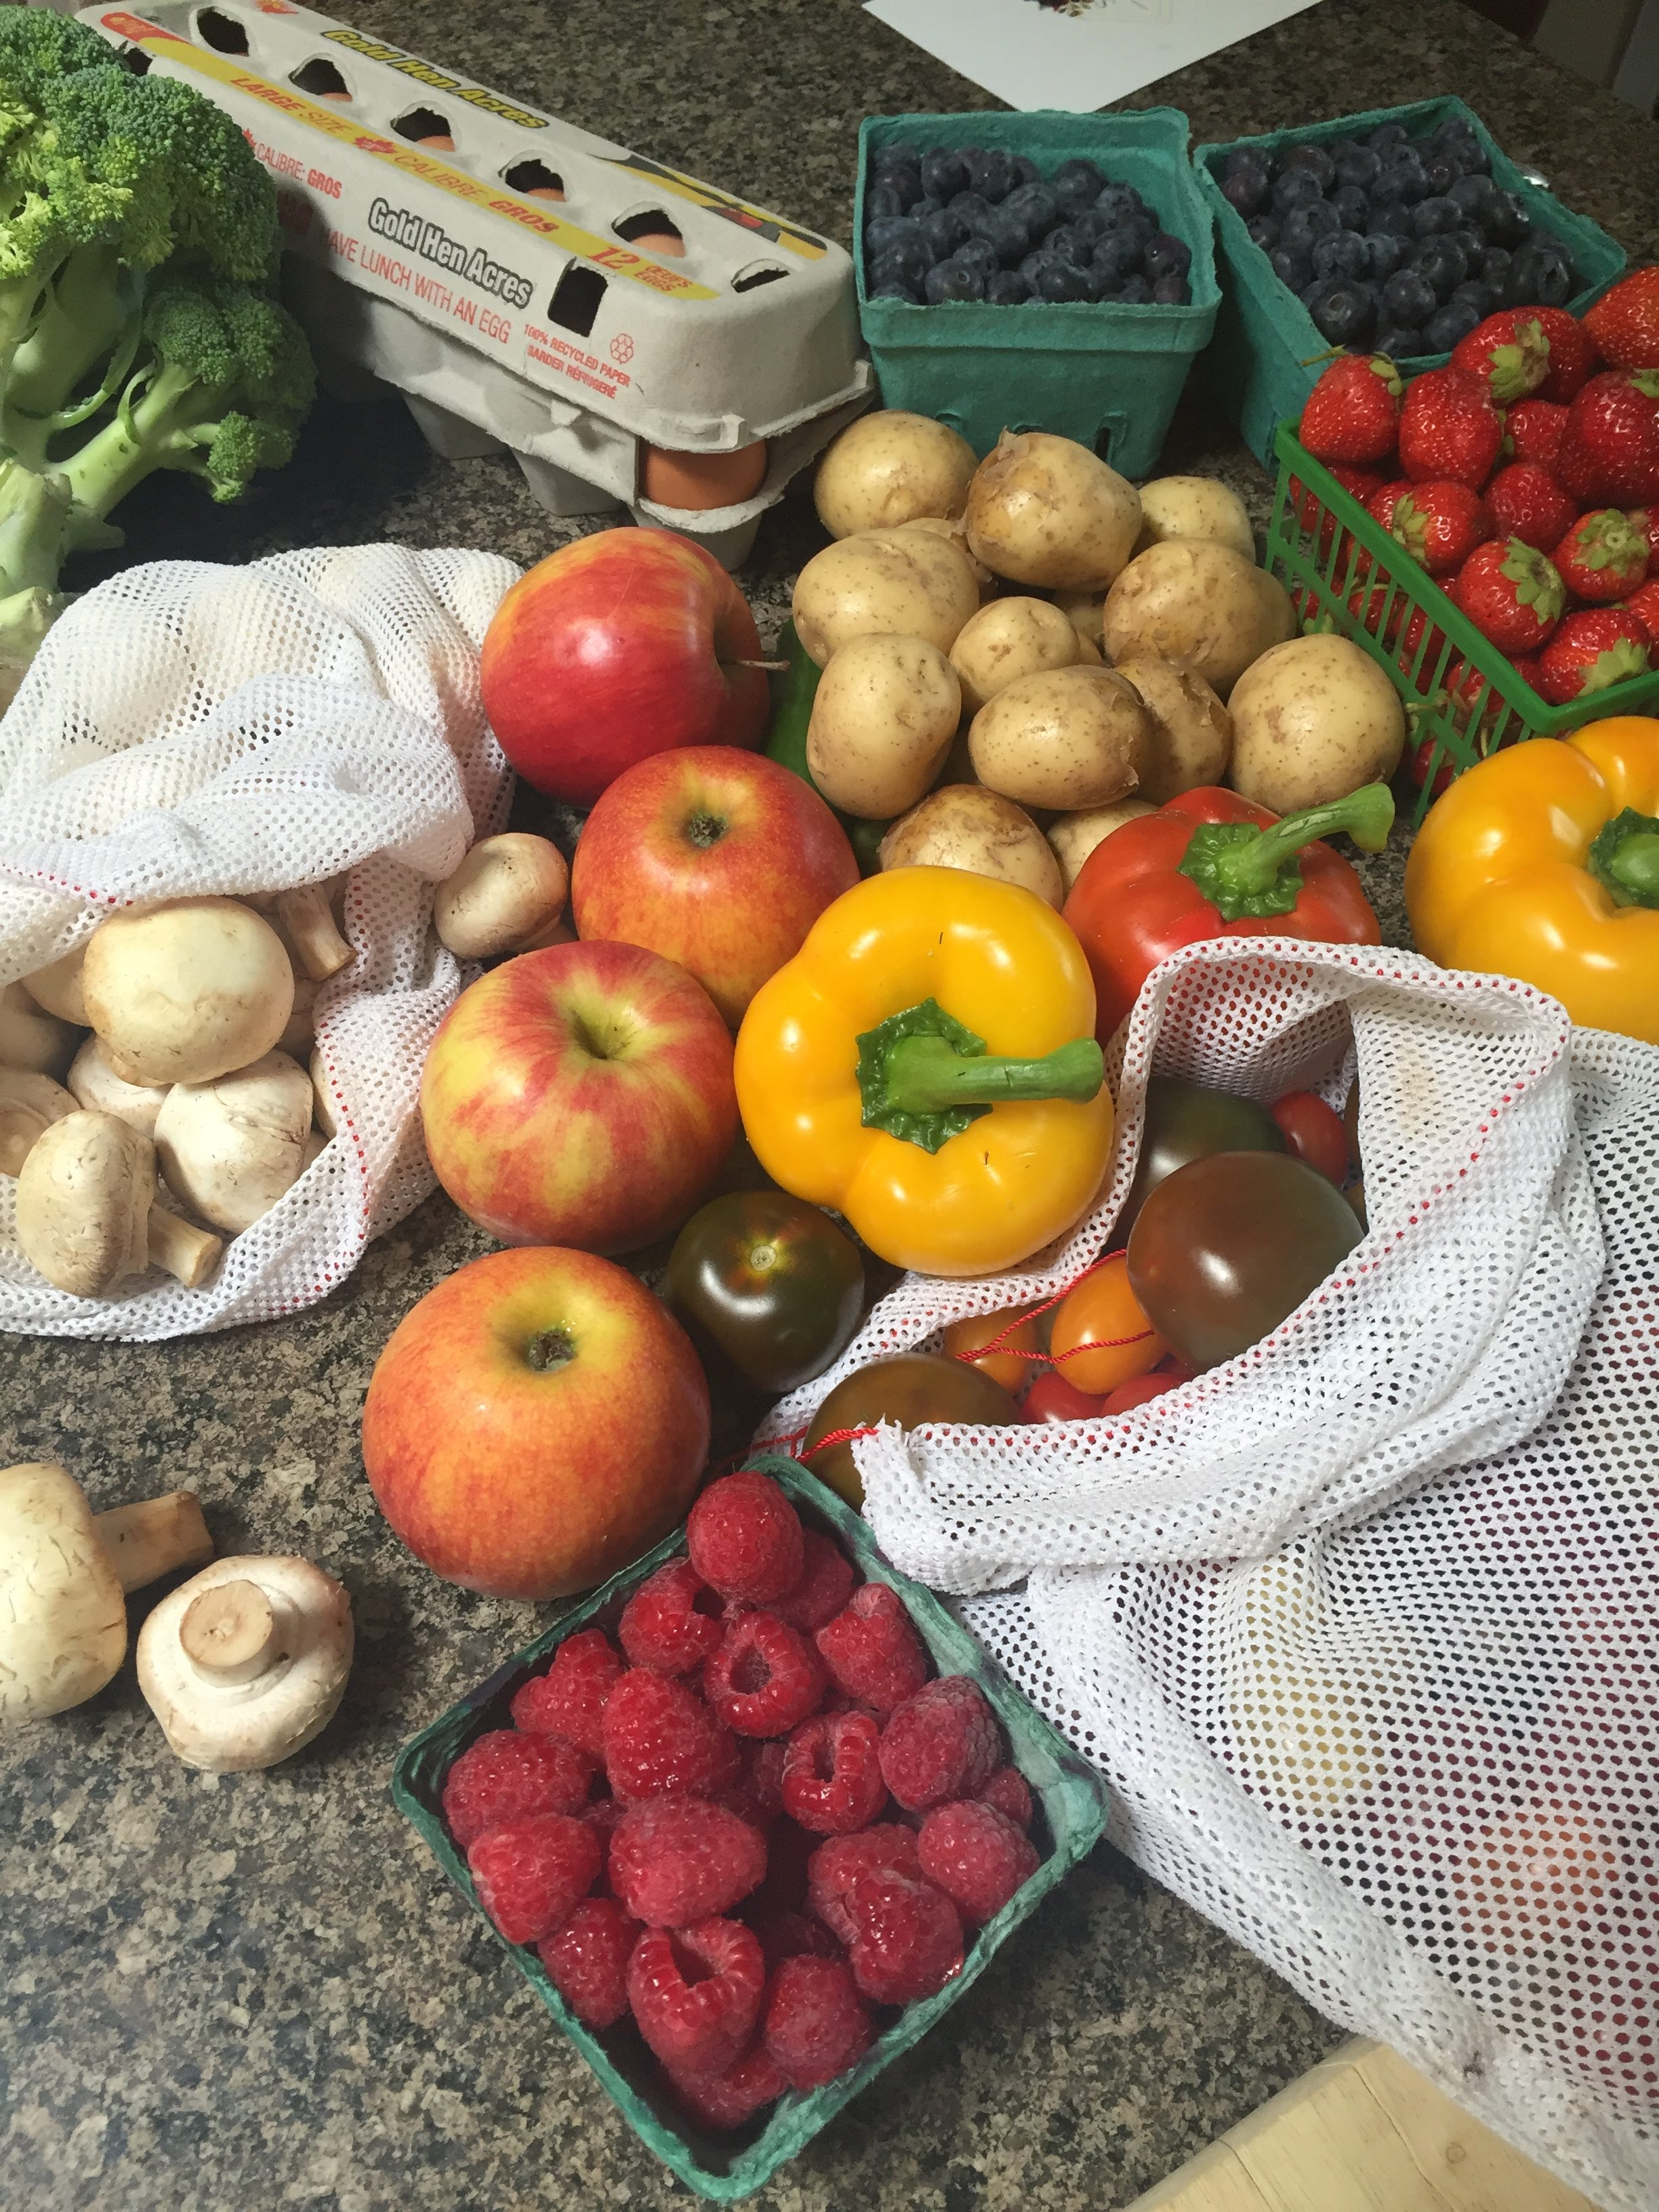 A mix of colorful fruits and veggies like apples, peppers, mushrooms and berries with tomatoes in reusable produce bags